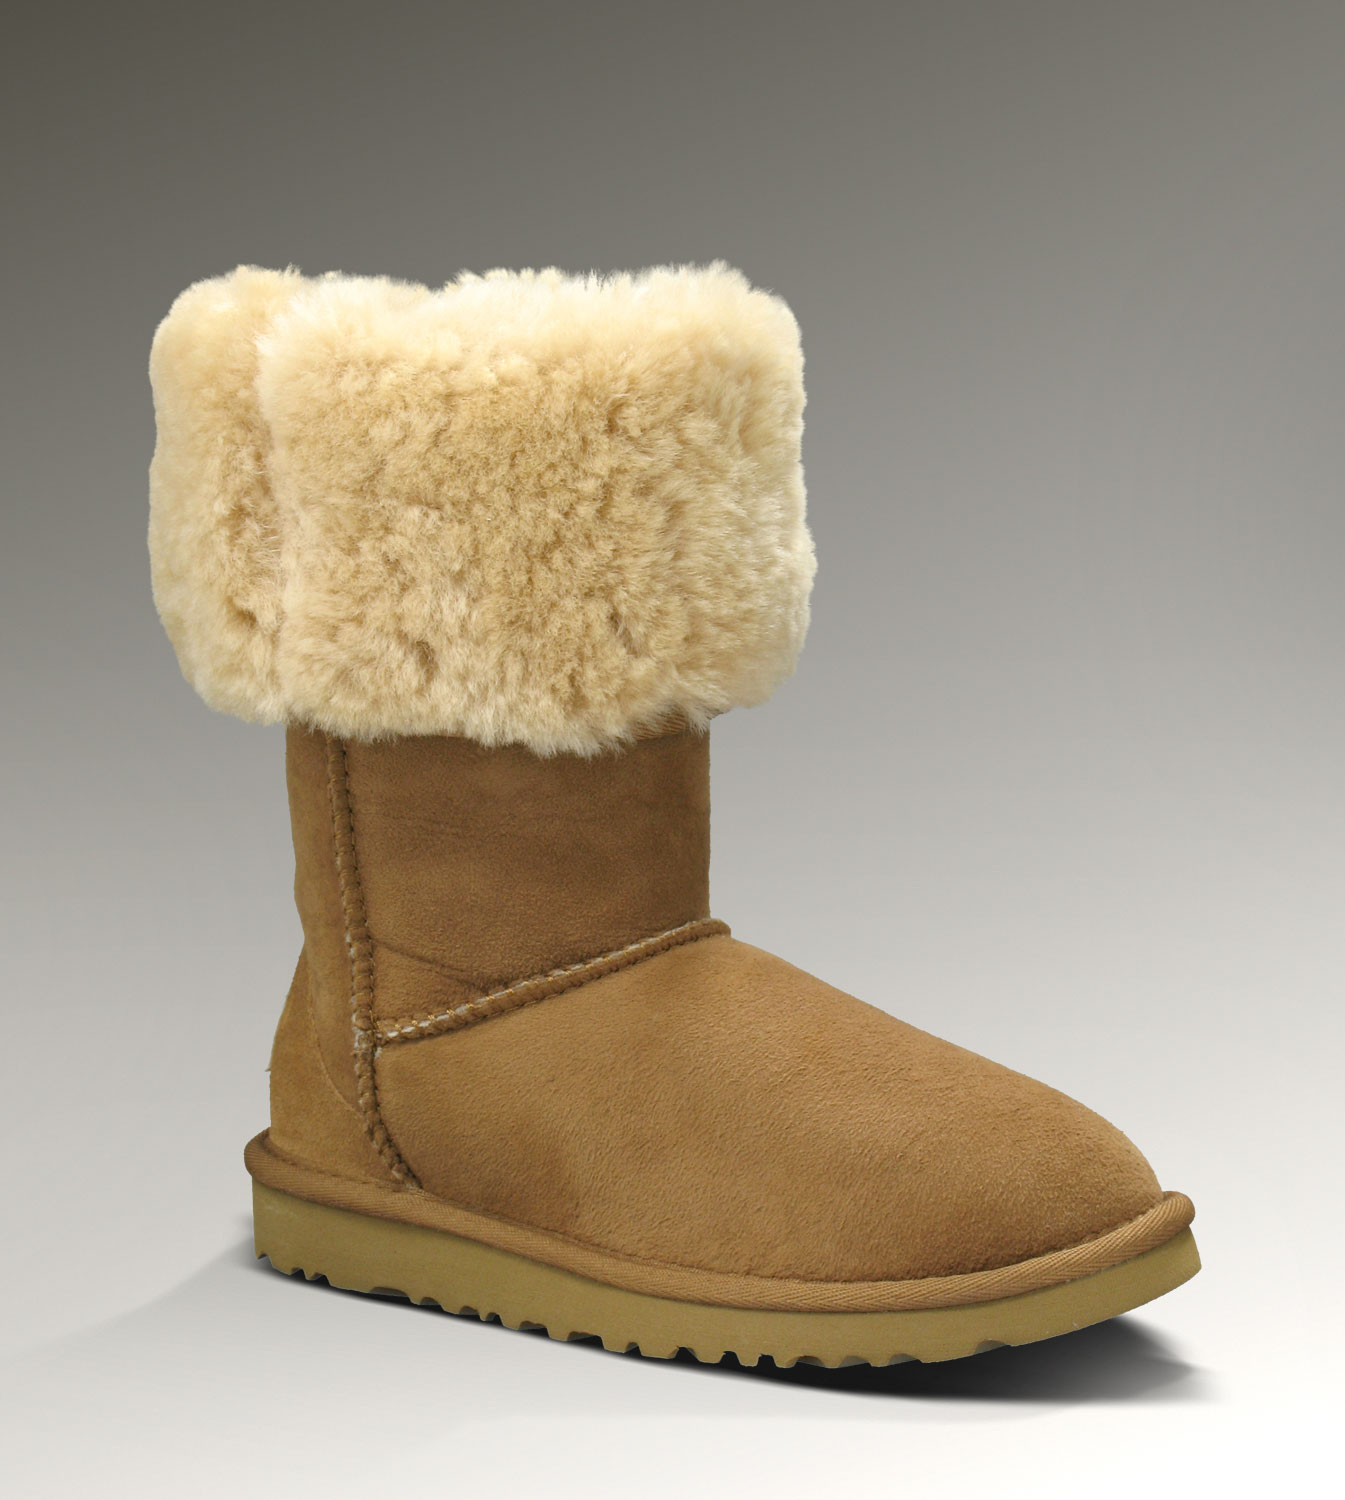 UGG Classic Tall 5229 Chestnut Boots